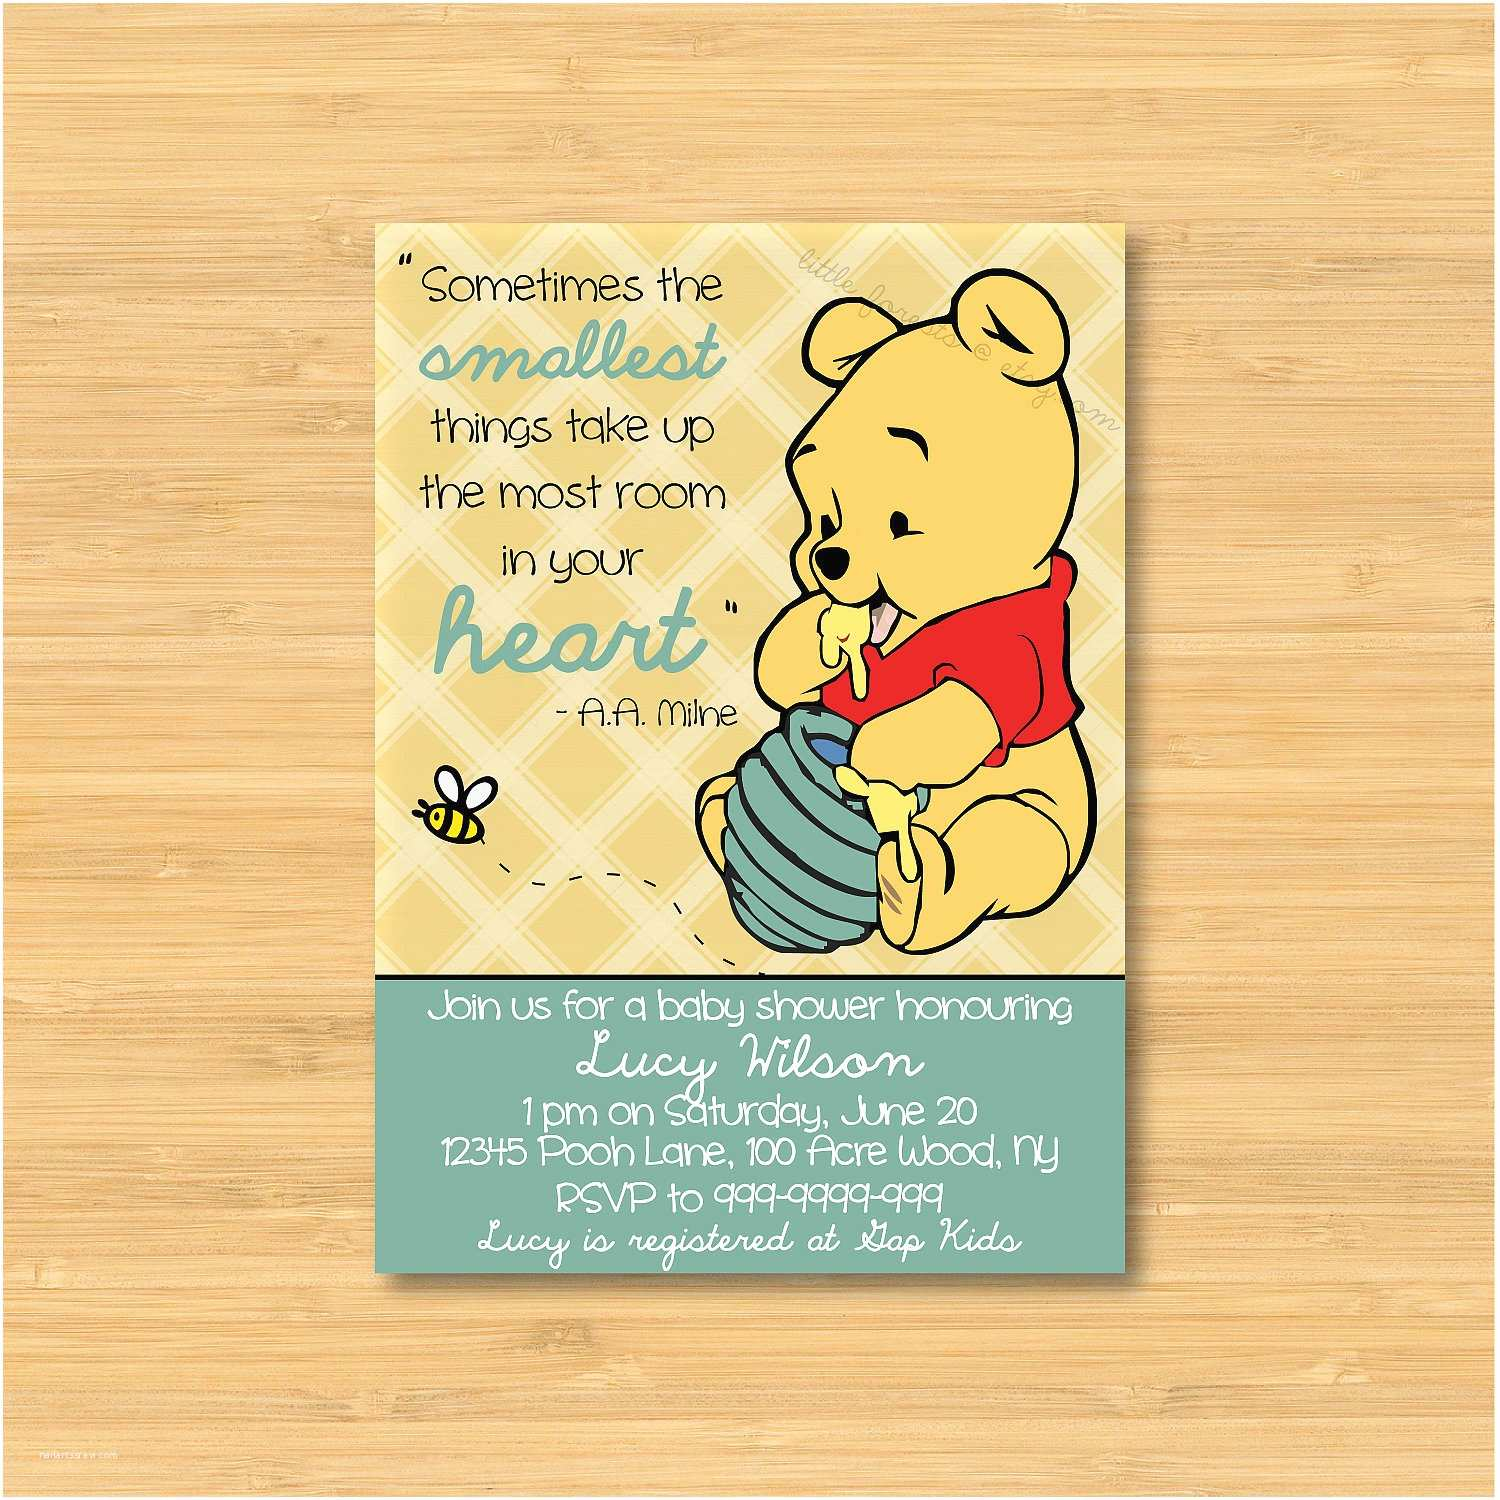 graphic relating to Printable Winnie the Pooh Baby Shower Invitations called Winnie the Pooh Child Shower Invites Clic Winnie the